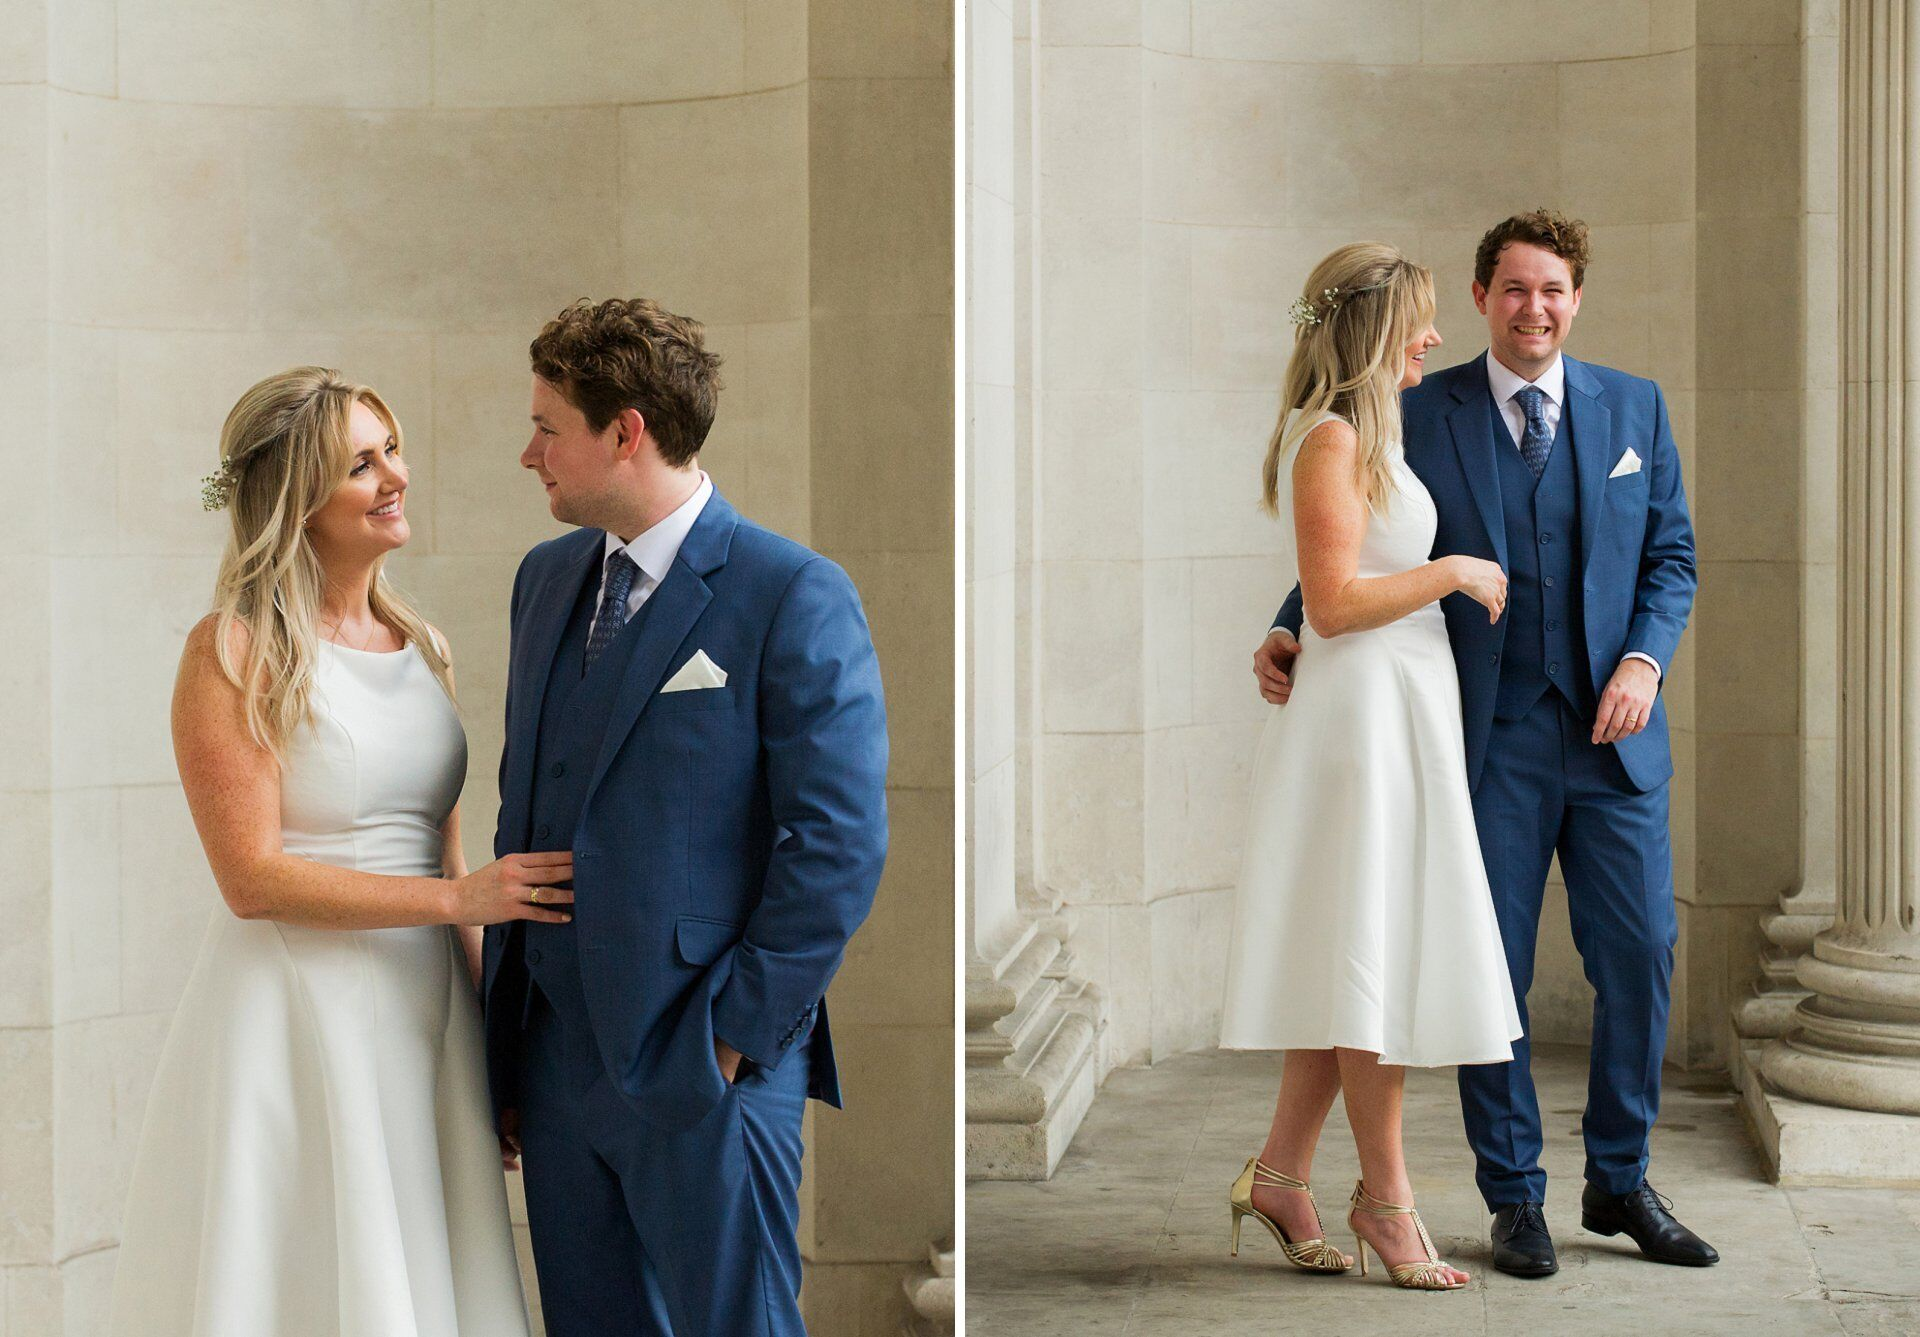 stylish small register office wedding at old marylebone town hall by short coverage specilaist emma duggan